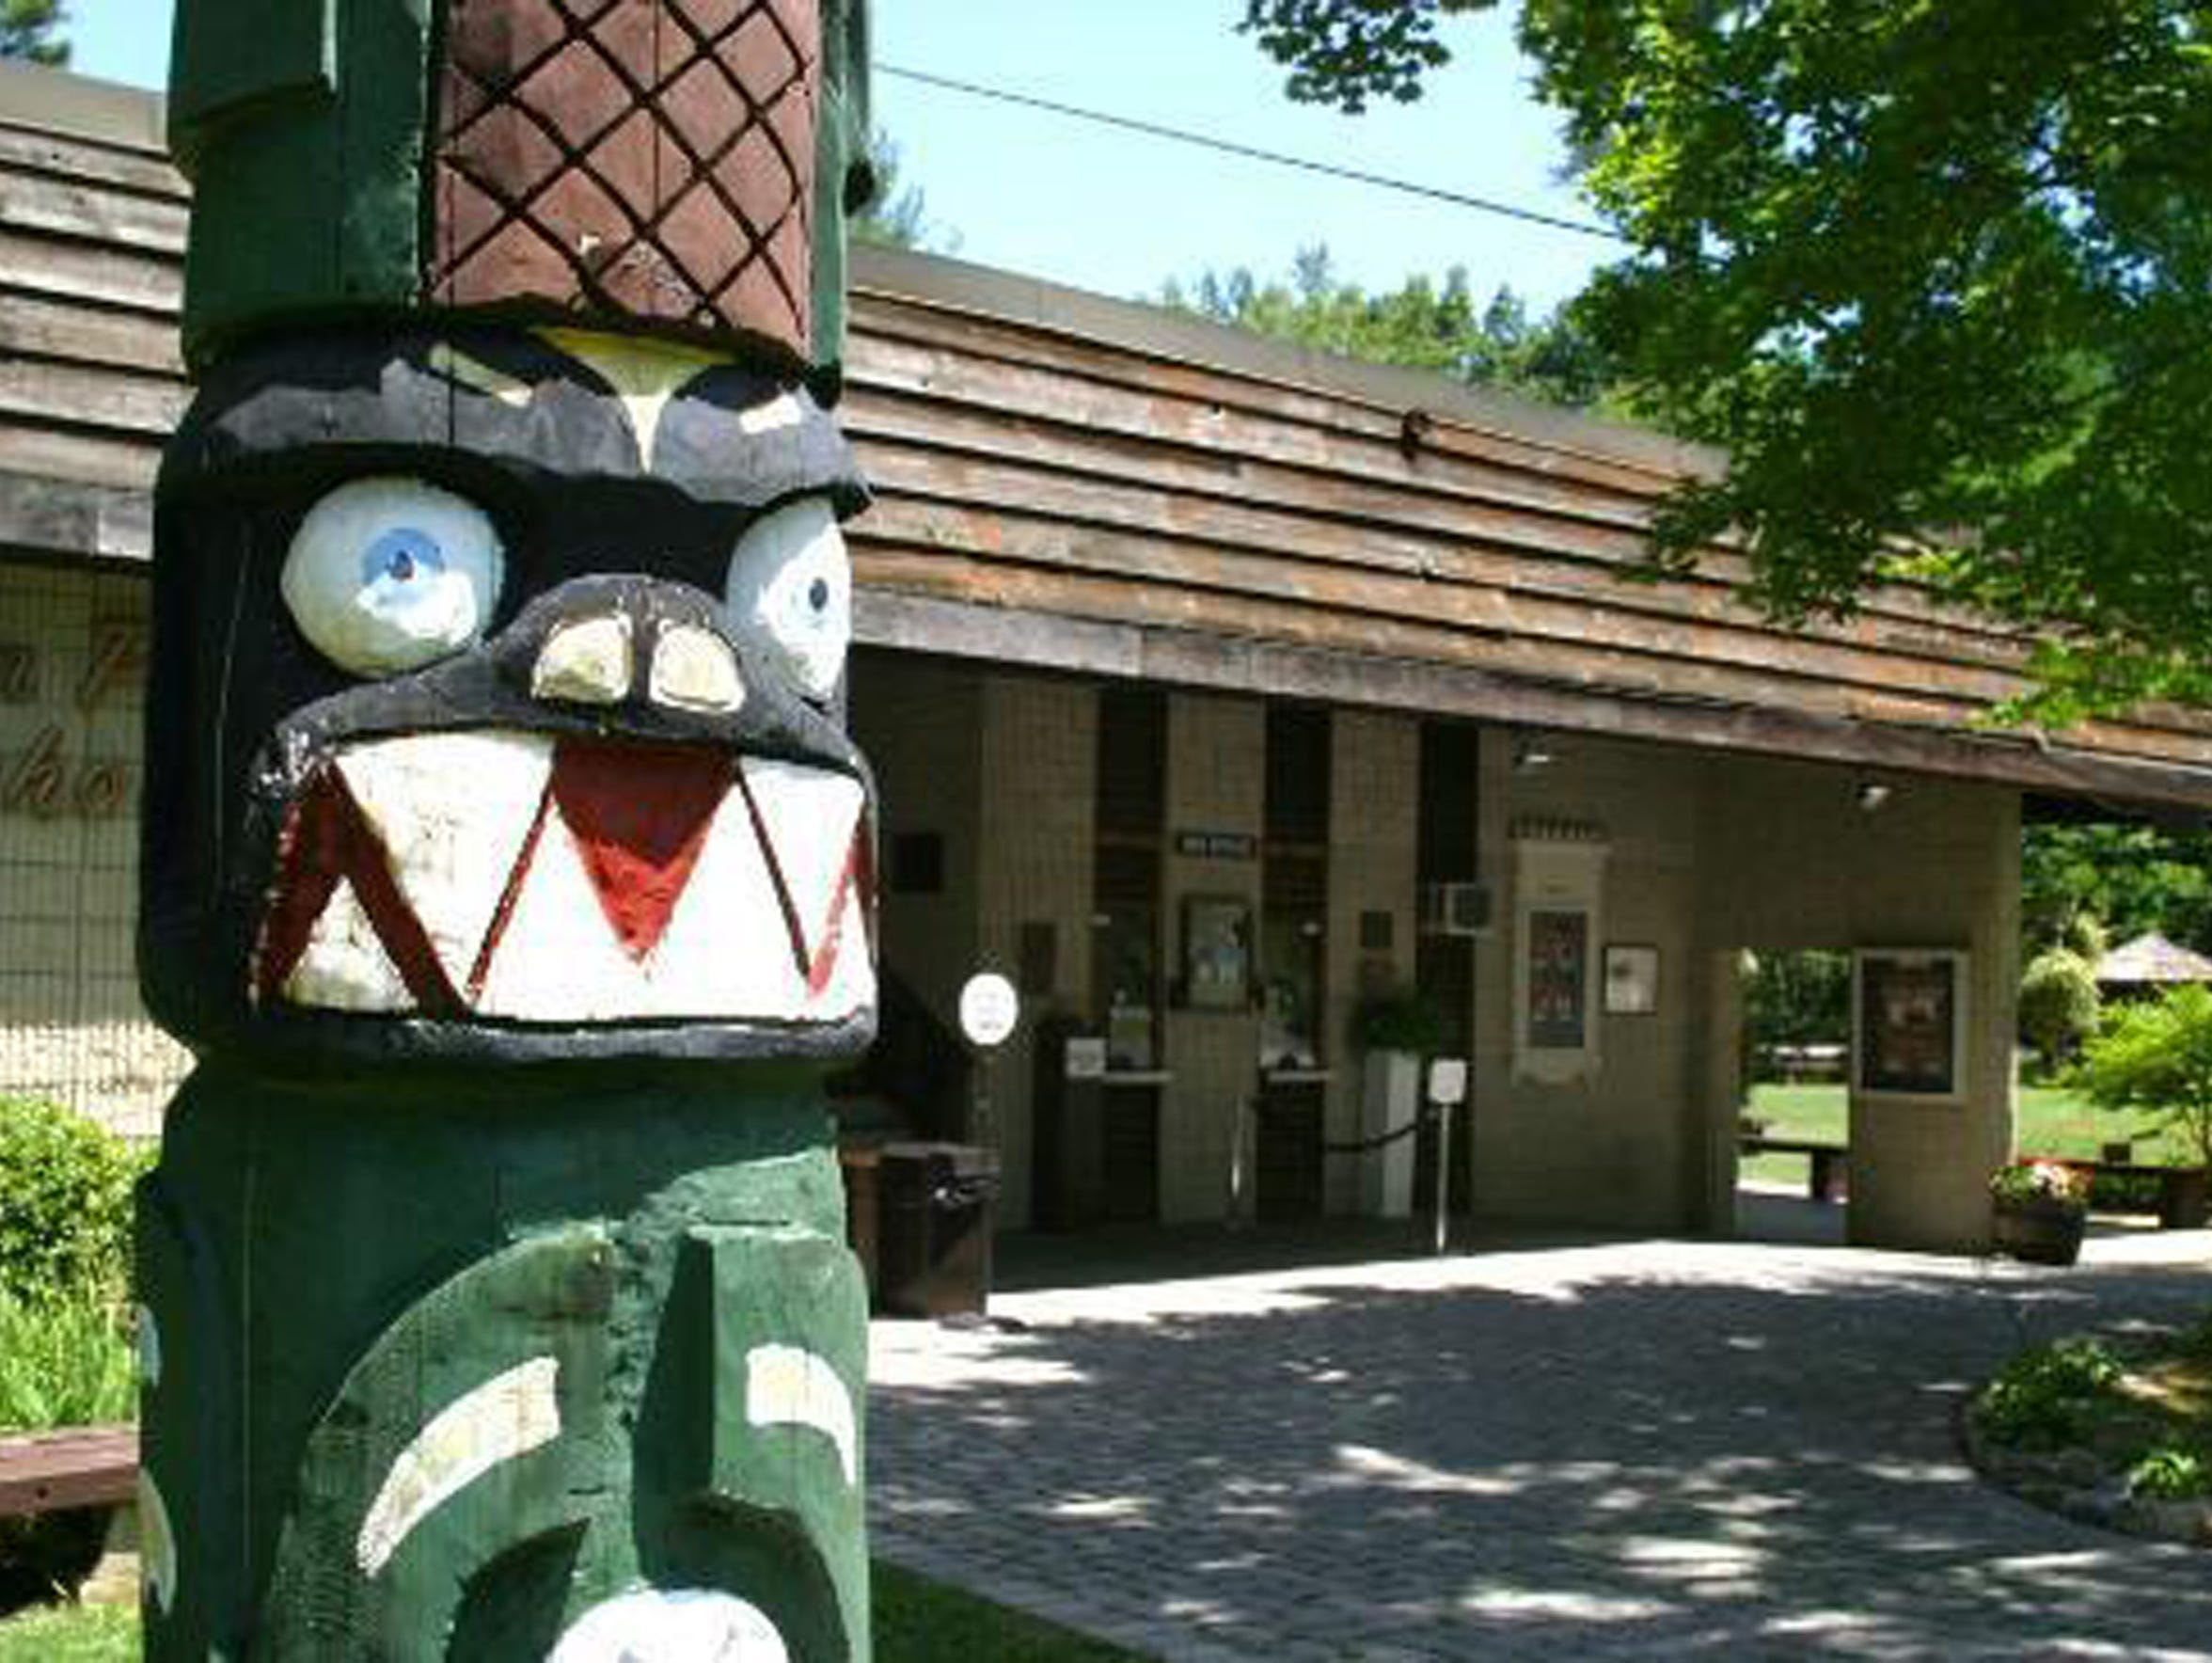 Totem Pole Playhouse is located off Pa. 233 at Caledonia